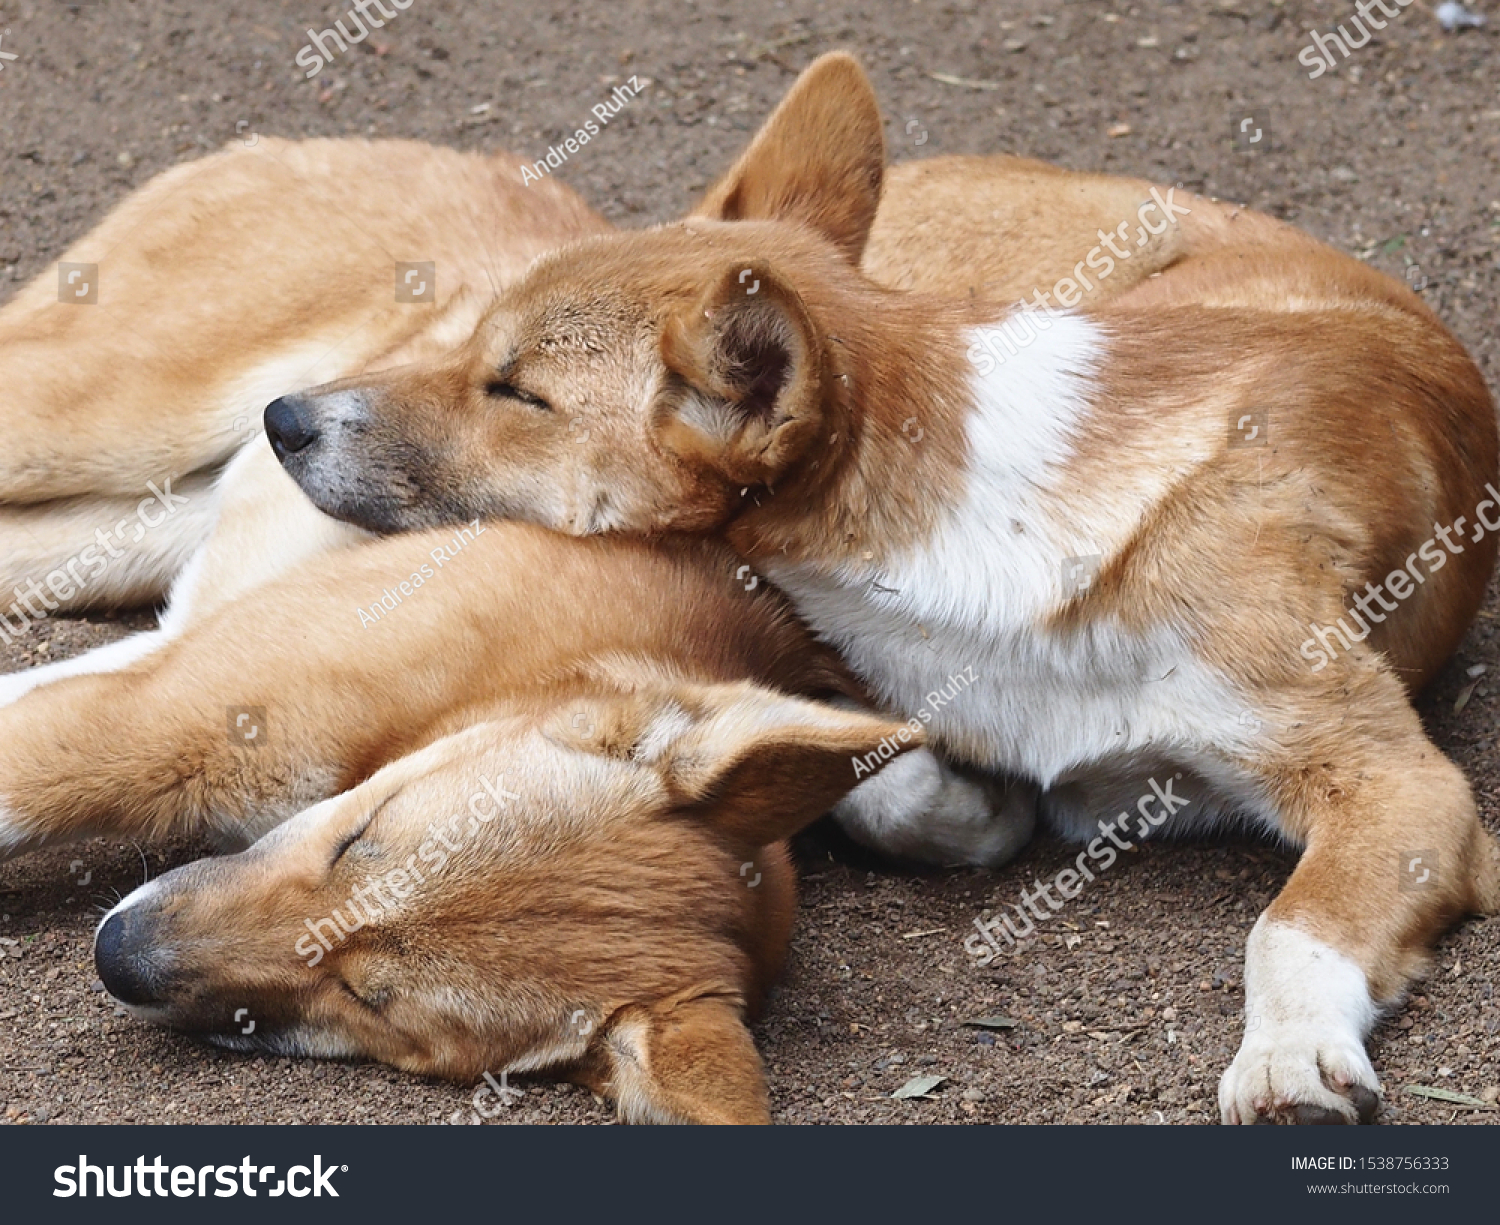 A Closeup Portrait of Two Restful Relaxed Dingoes in a Calm Tranquil Pose.          #1538756333